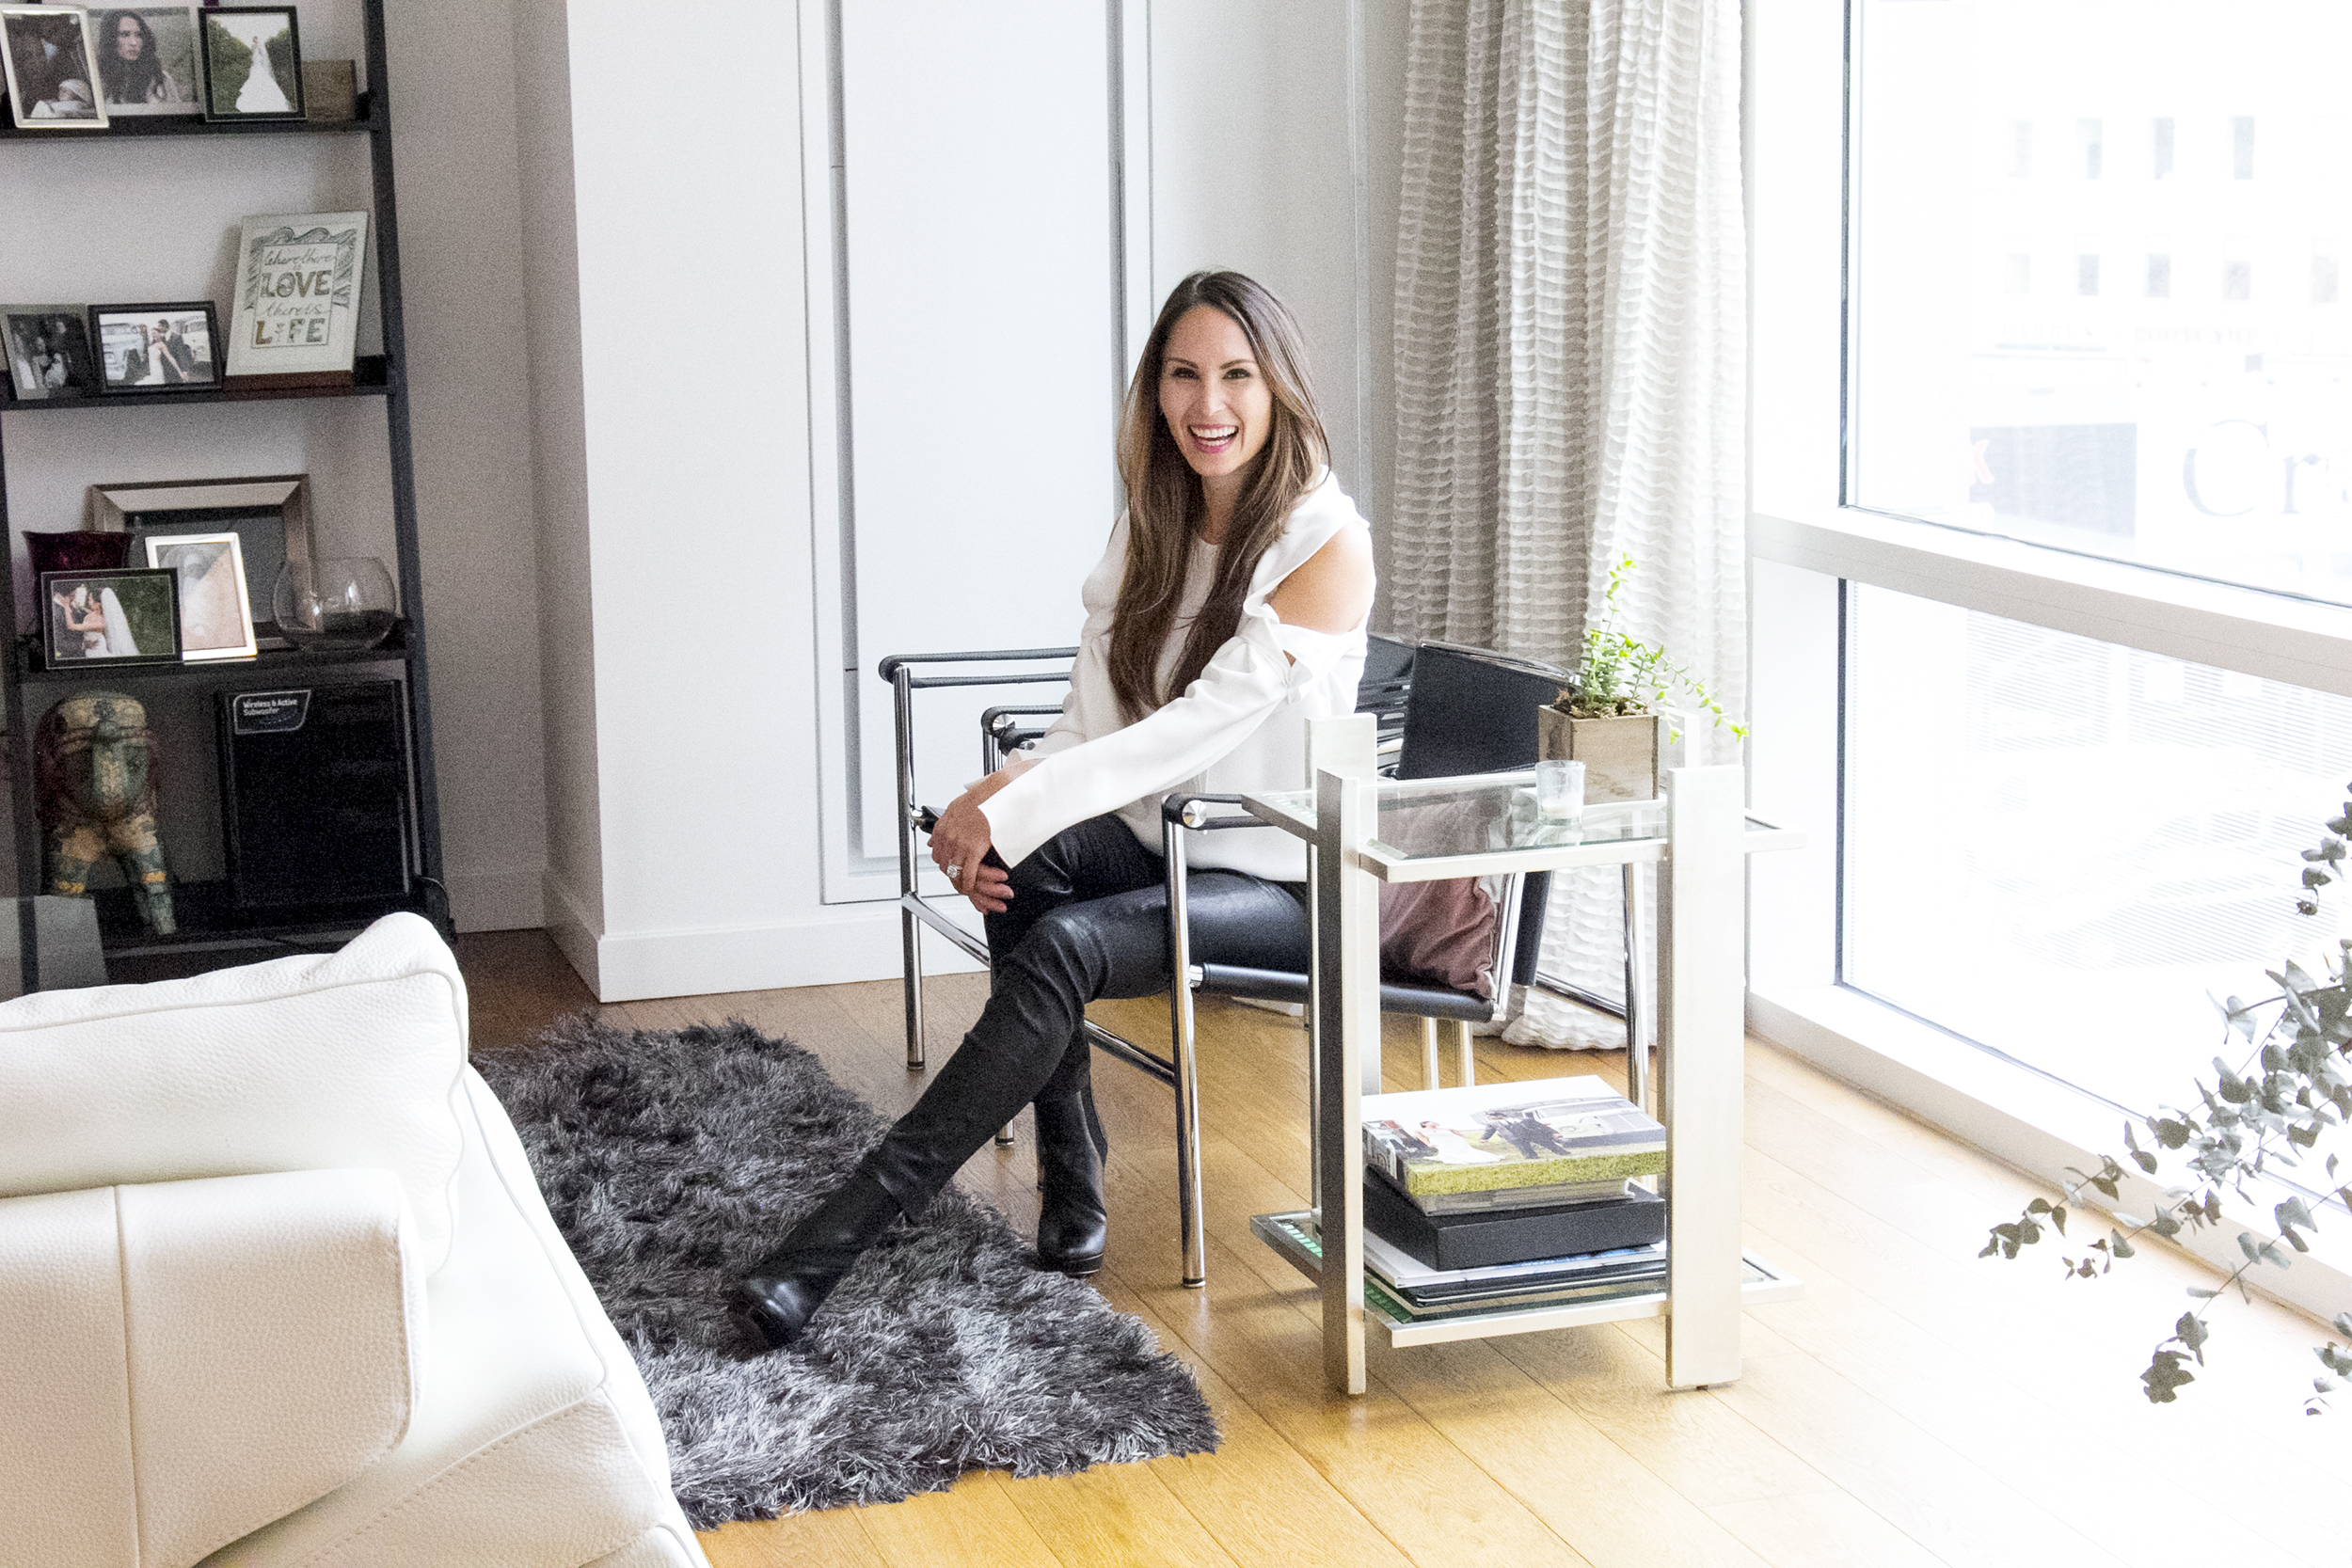 Toreutique Co-founder Jennifer Kapahi